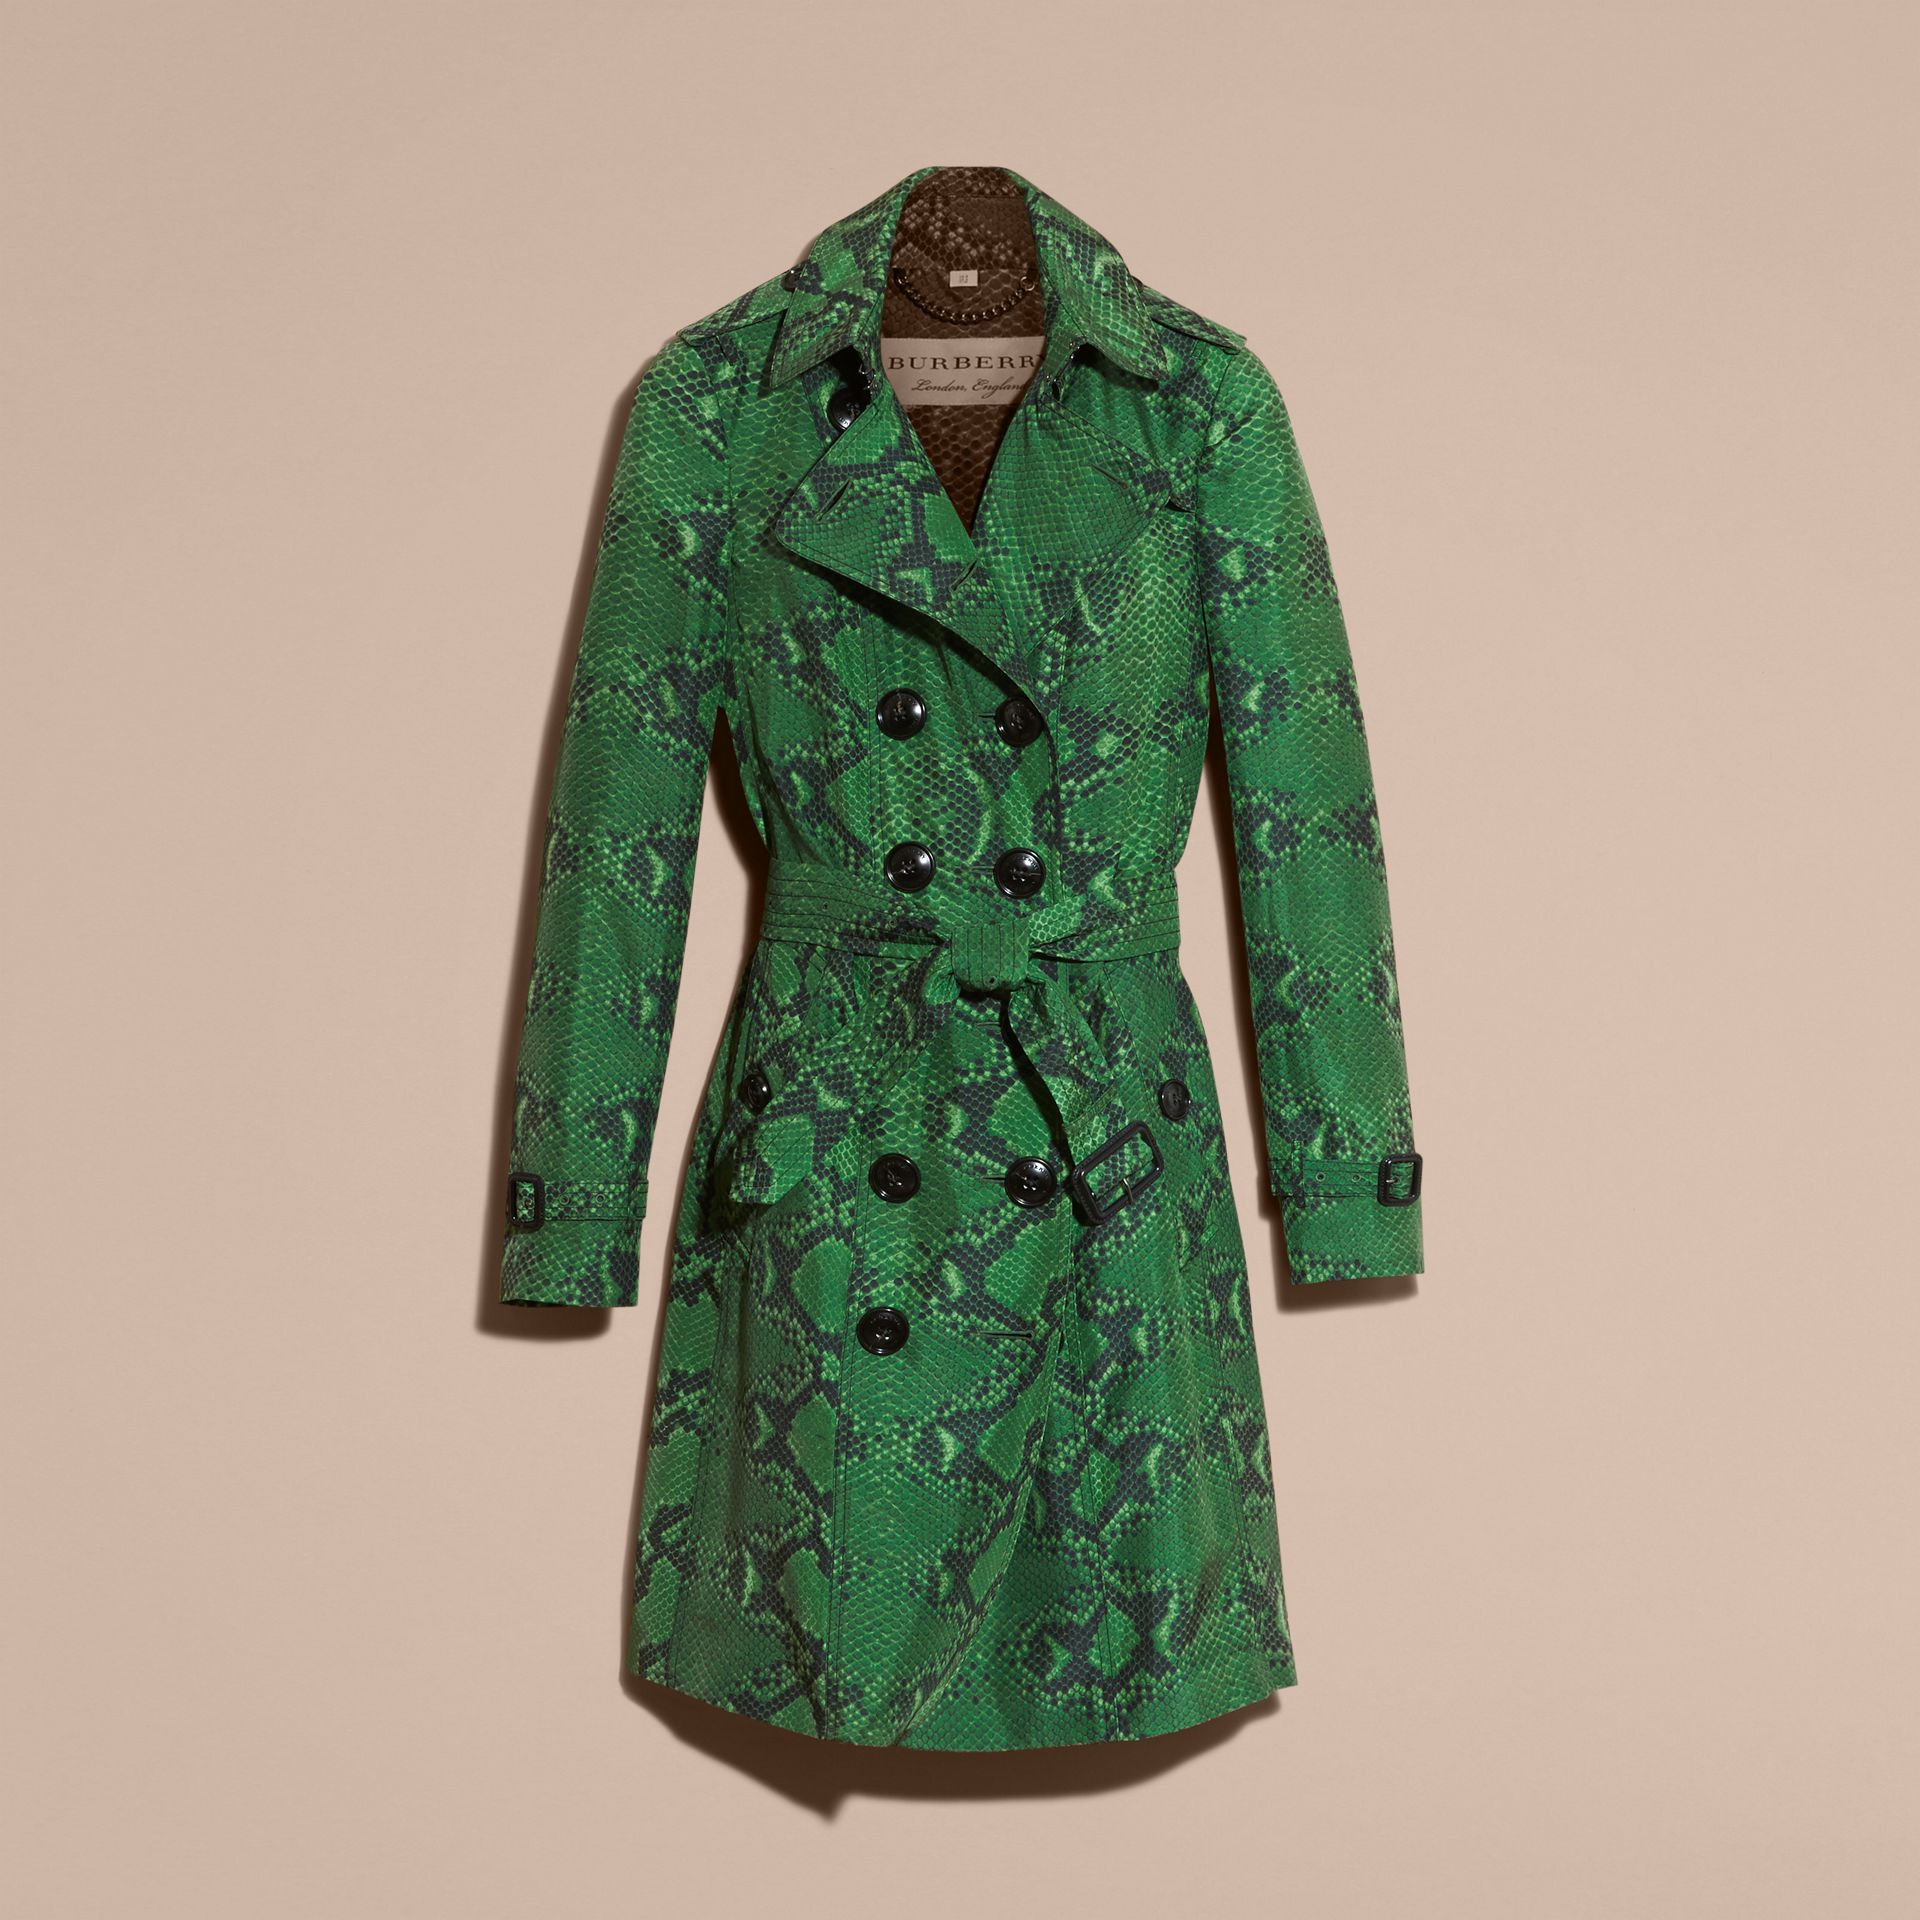 Bright green Python Print Silk Trench Coat Bright Green - gallery image 4